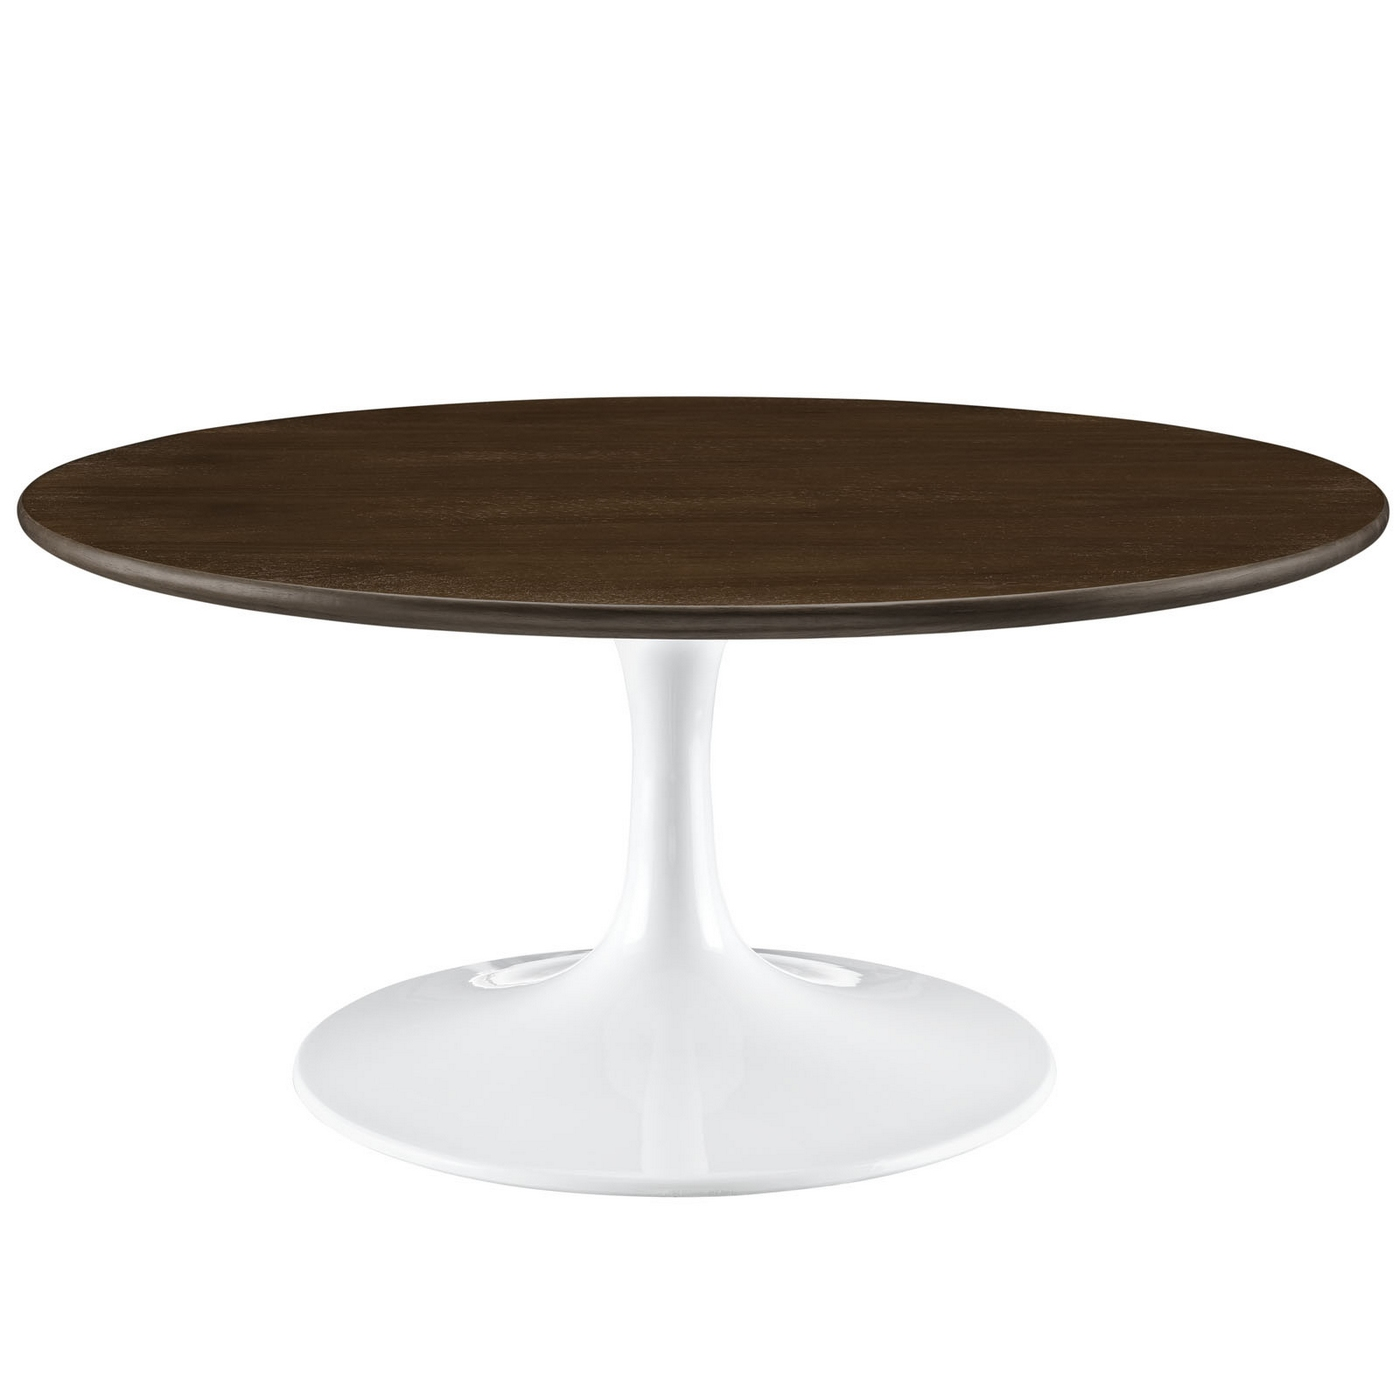 Lippa Modern 36 Round Walnut Coffee Table With Lacquered Finish Walnut